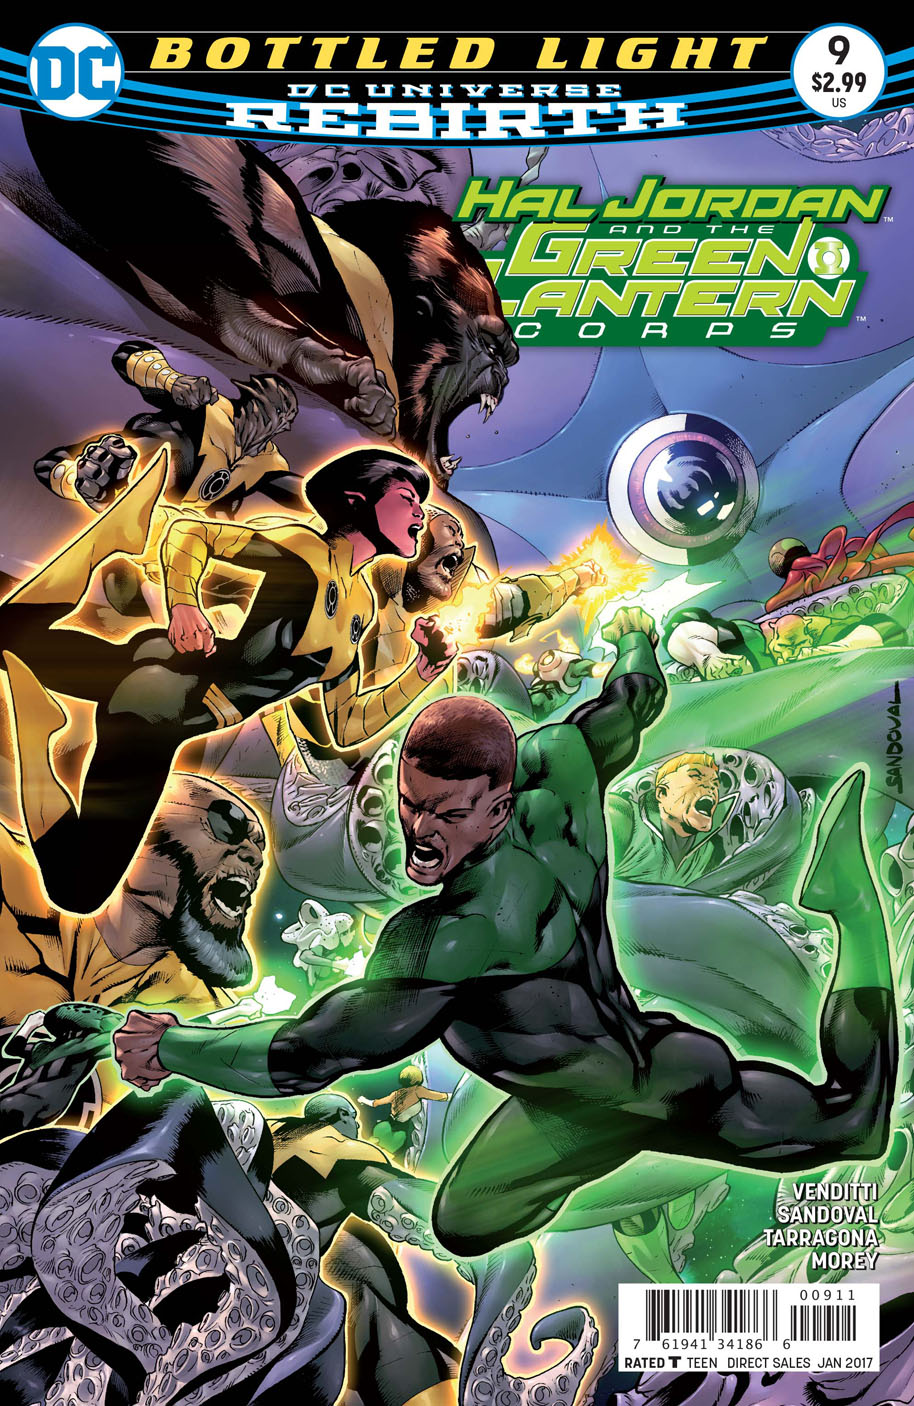 Hal Jordan and the Green Lantern Corps 9 cover